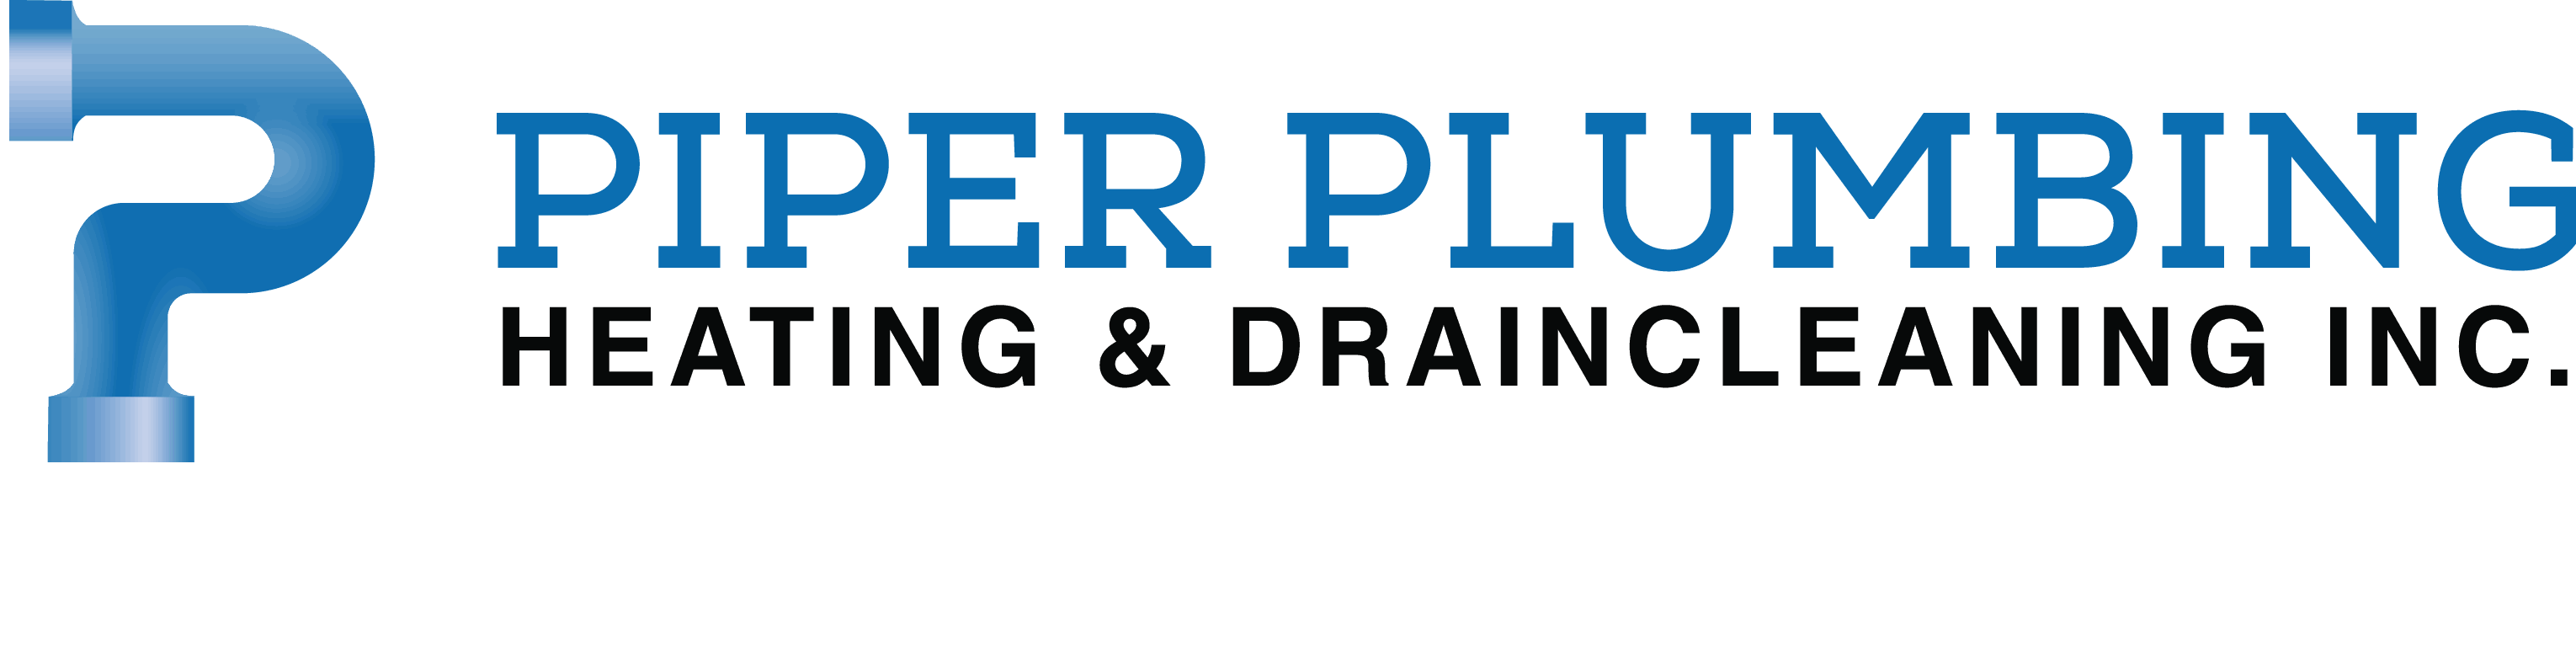 Piper Plumbing, Heating, Drain Cleaning